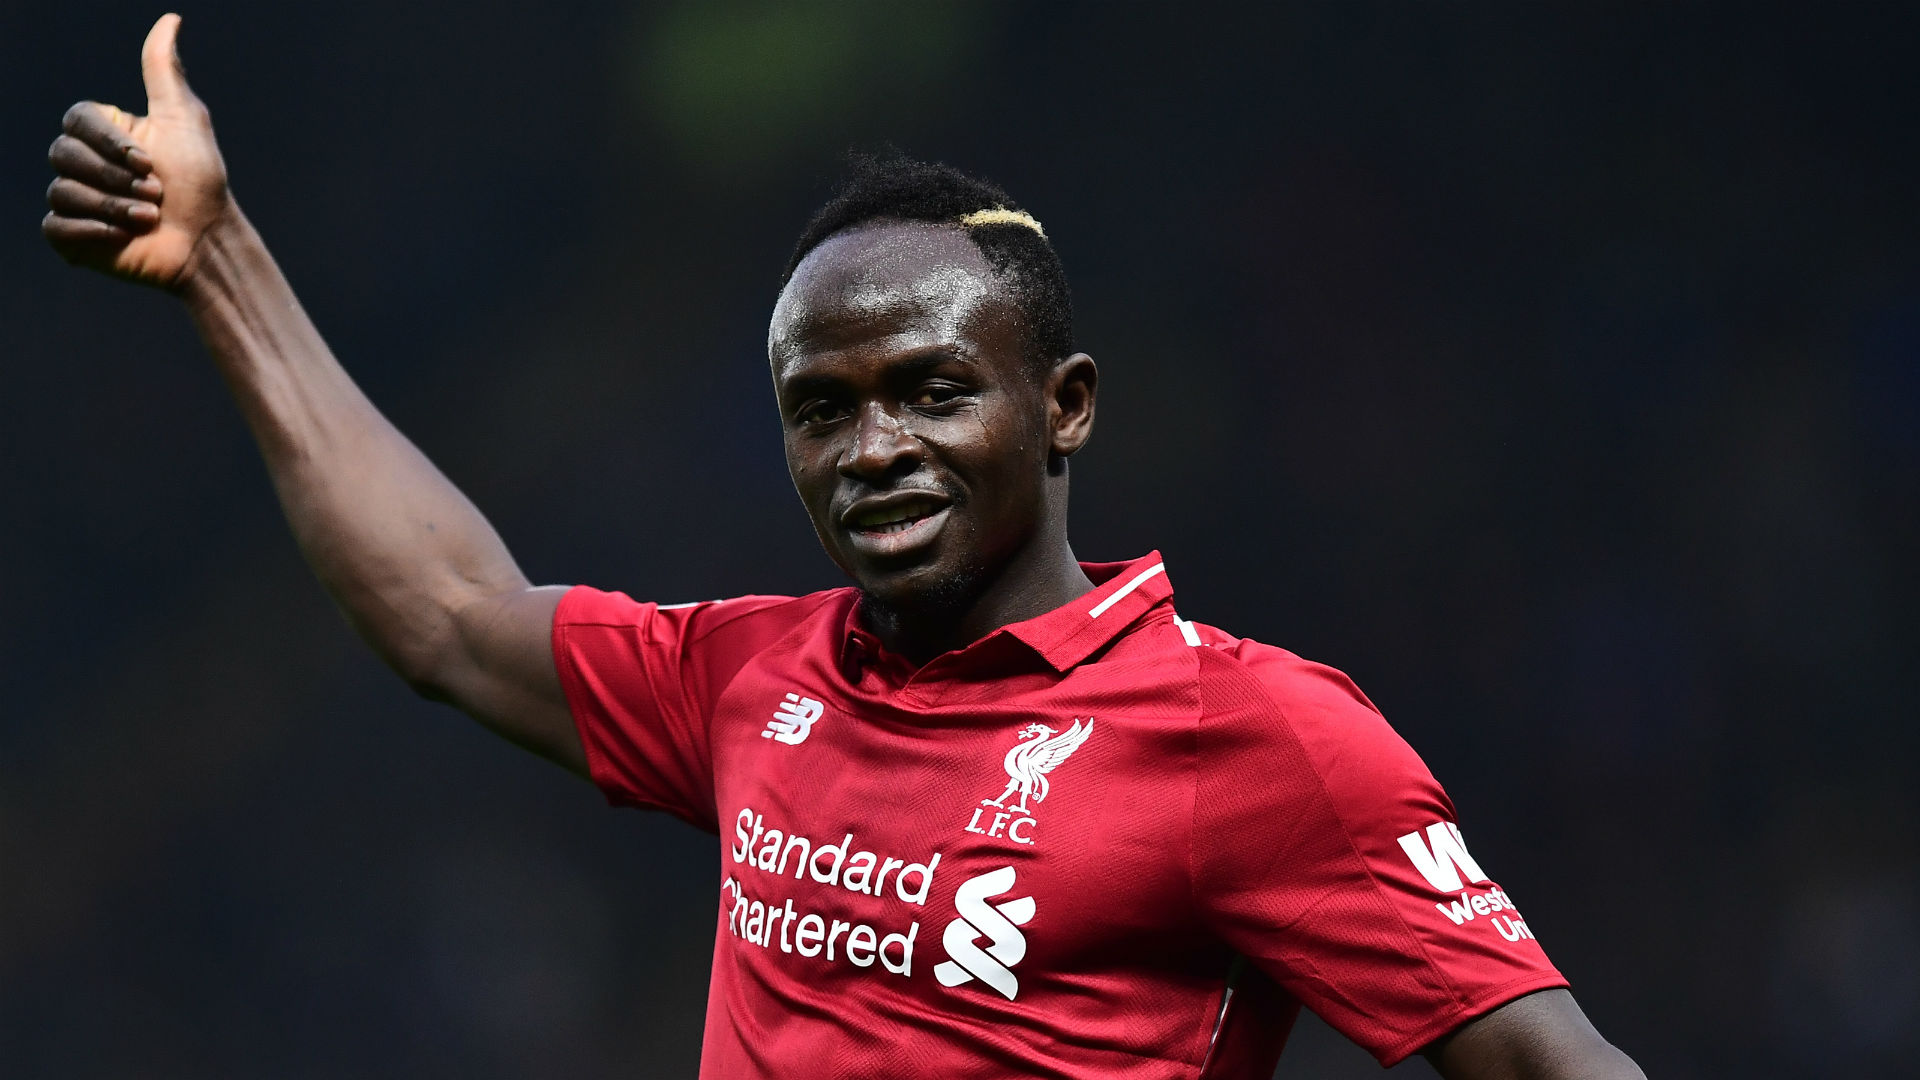 Liverpool are unlikely to have Sadio Mane back this weekend, while Jurgen Klopp is pleased Joe Gomez will not be sidelined for too long.